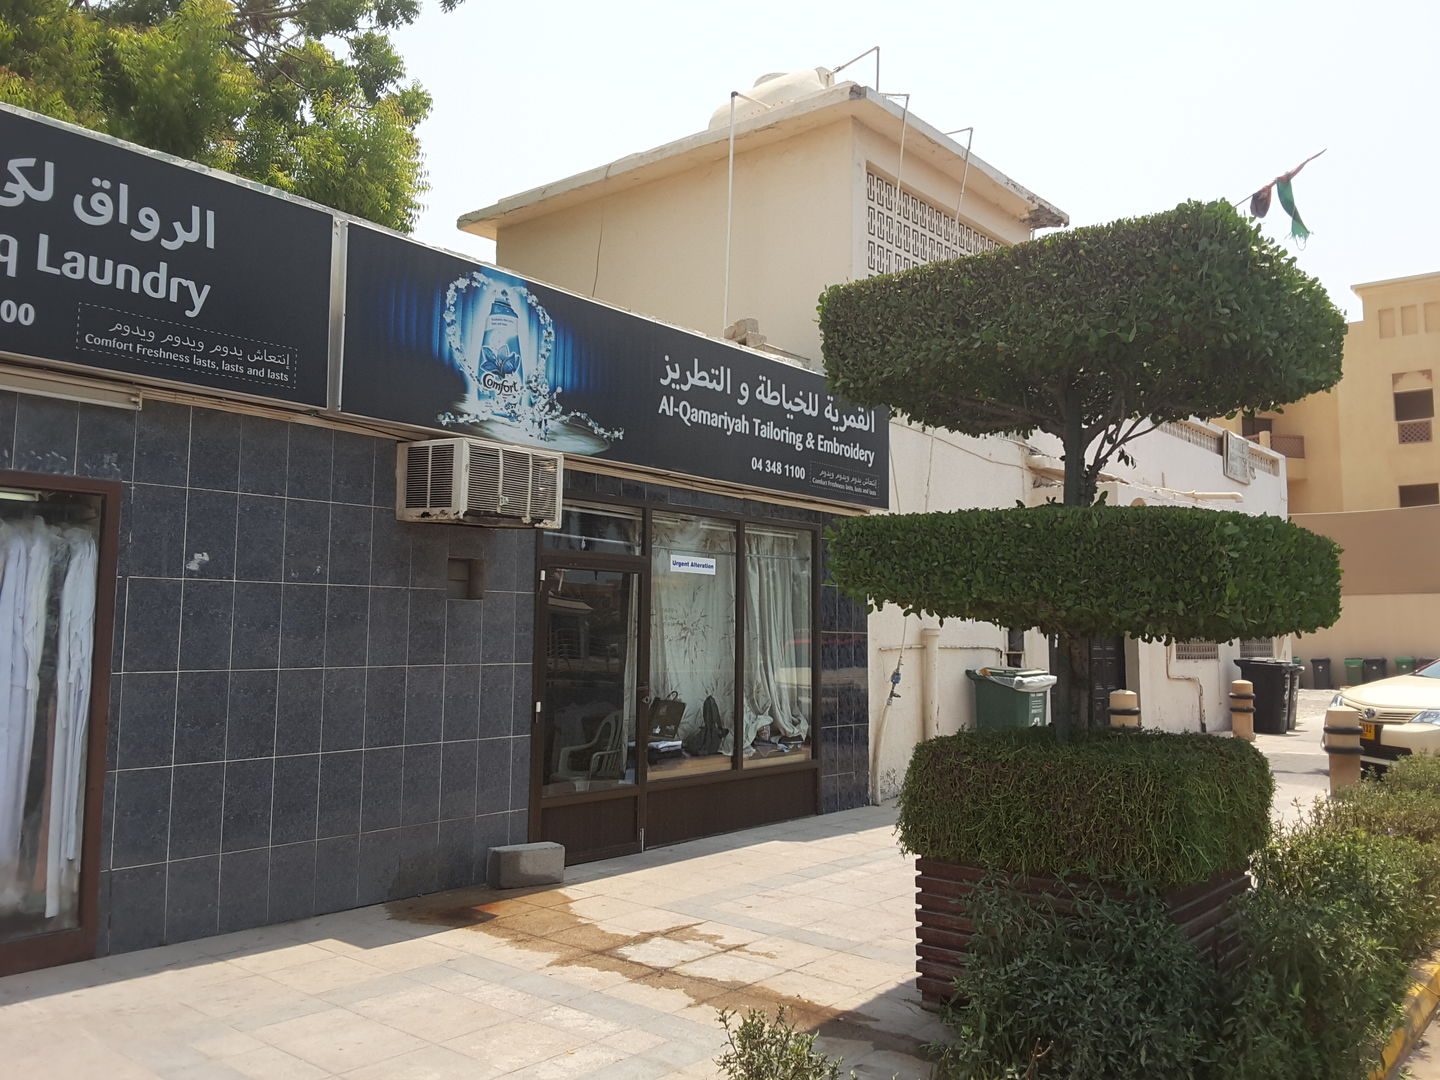 HiDubai-business-al-qamariyah-tailoring-embroidery-shopping-custom-clothes-designers-umm-suqeim-2-dubai-2